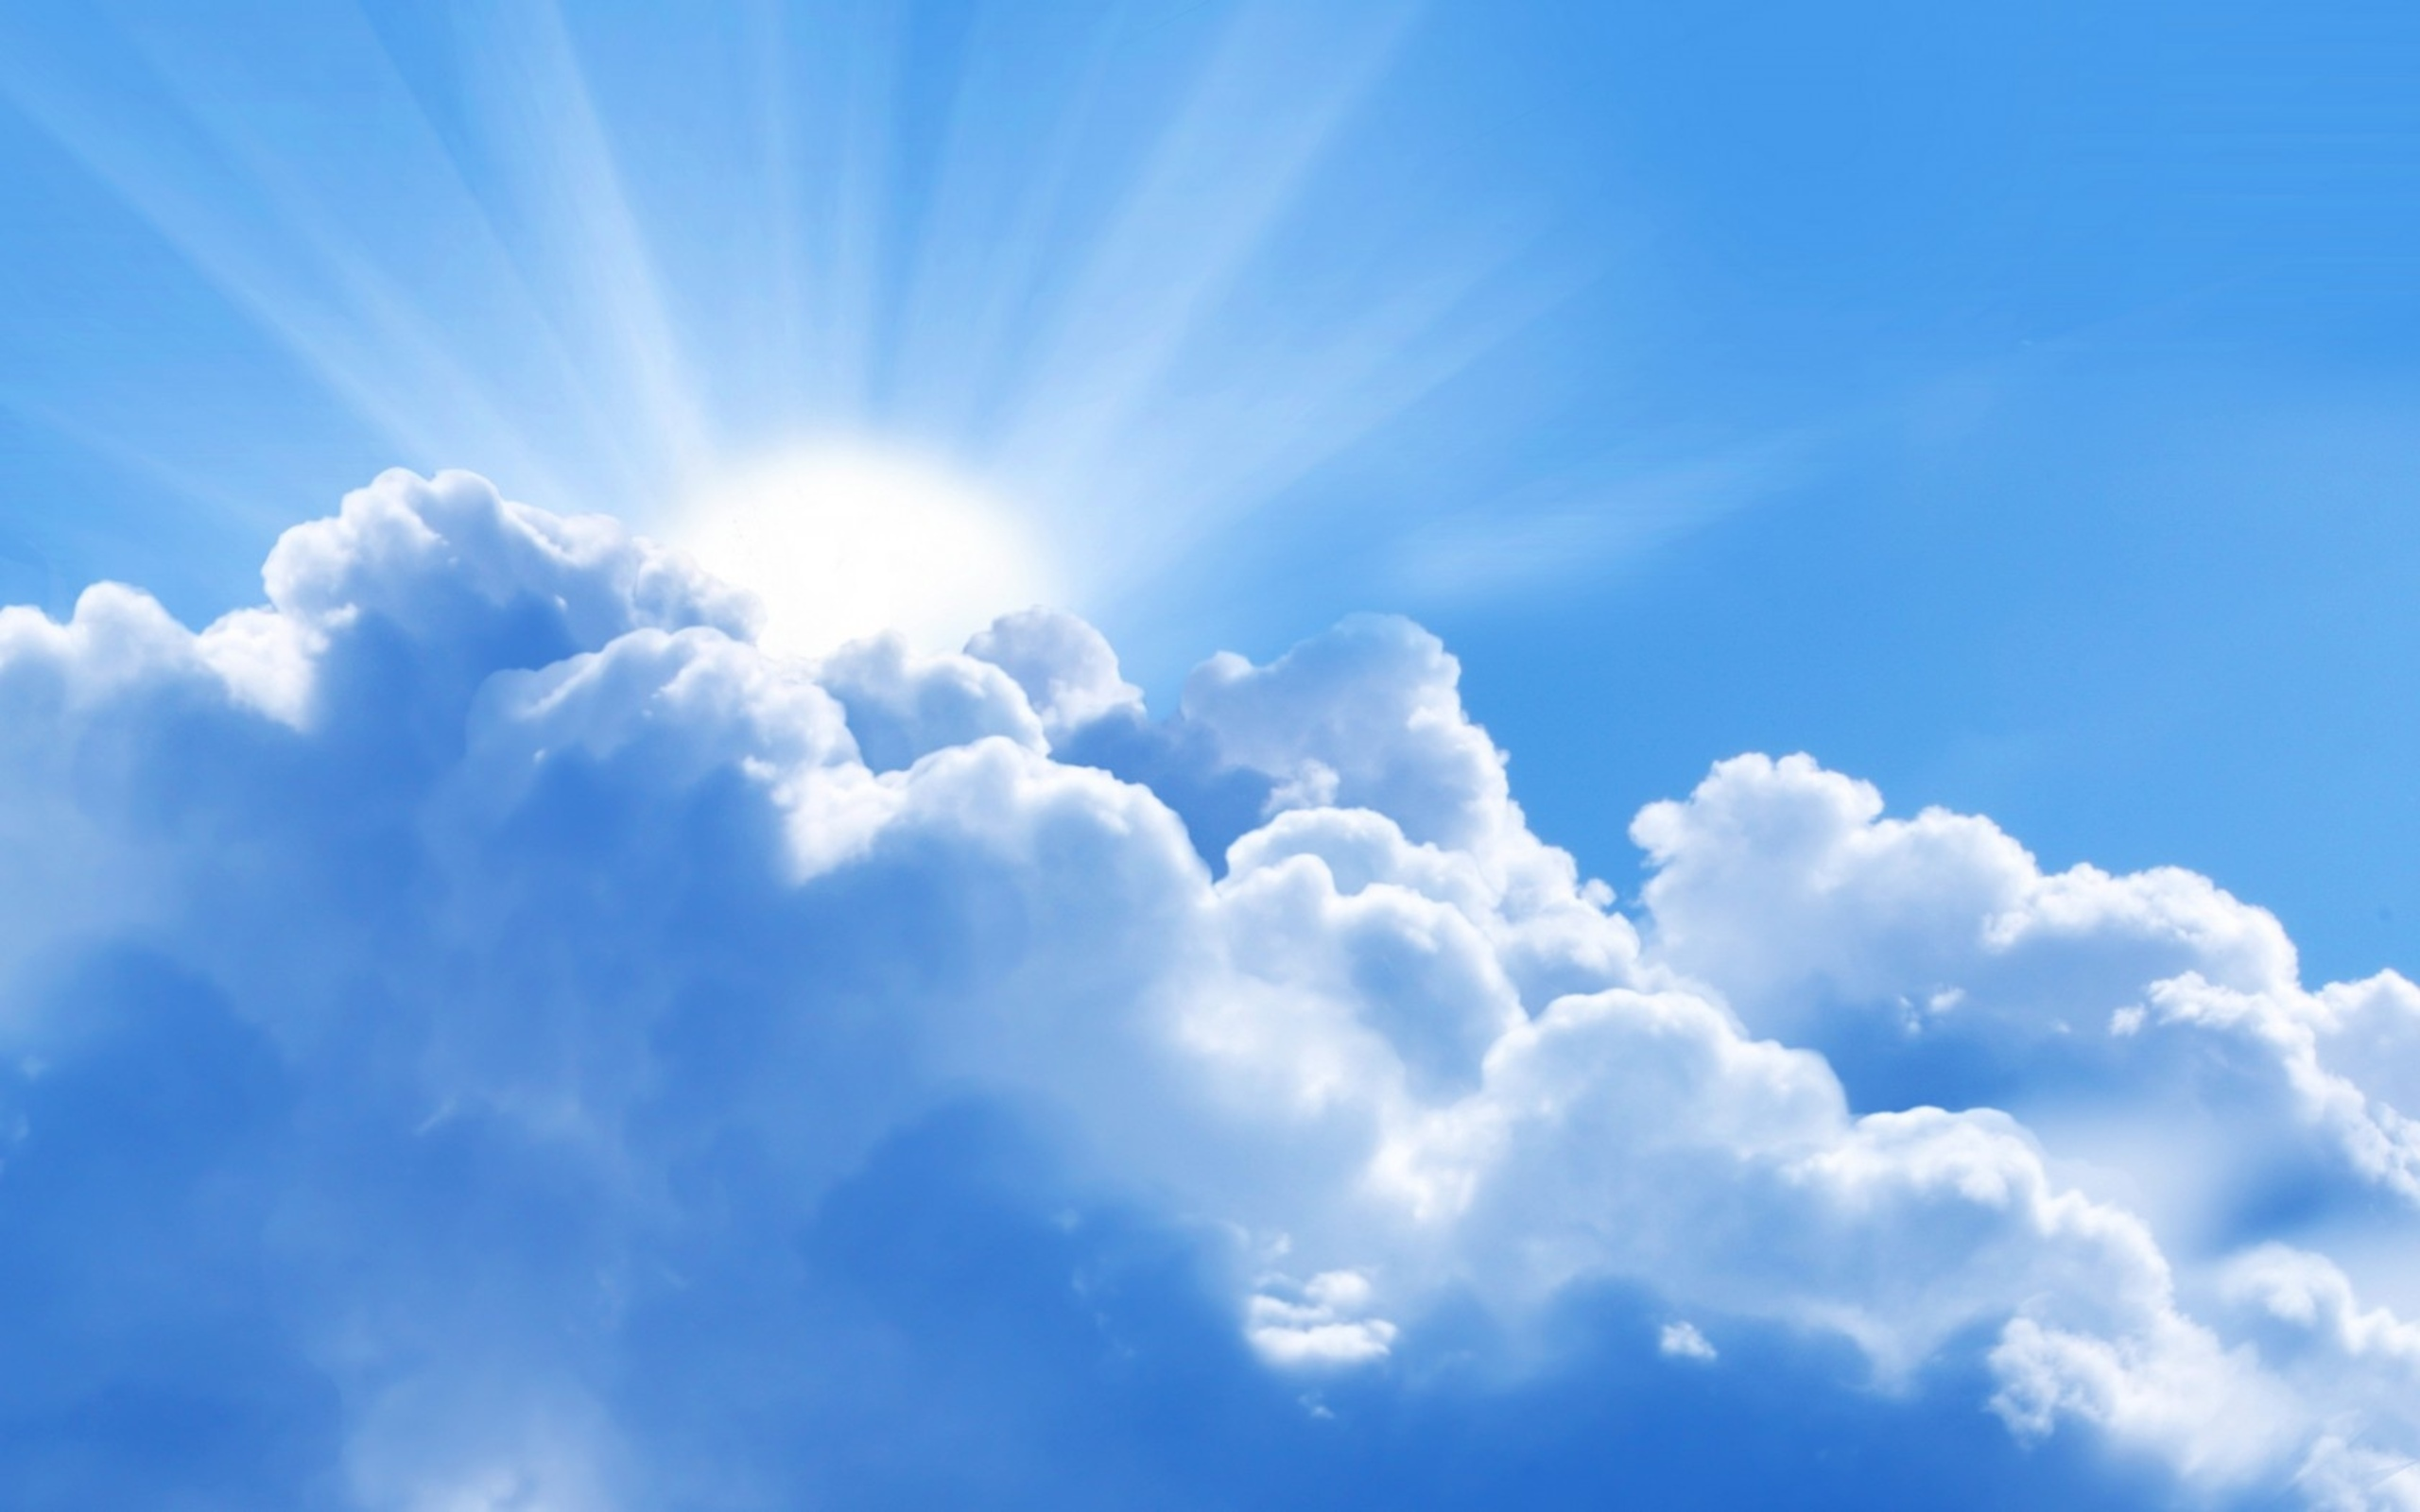 Cloud Full HD Wallpaper and Background 2560x1600 ID389344